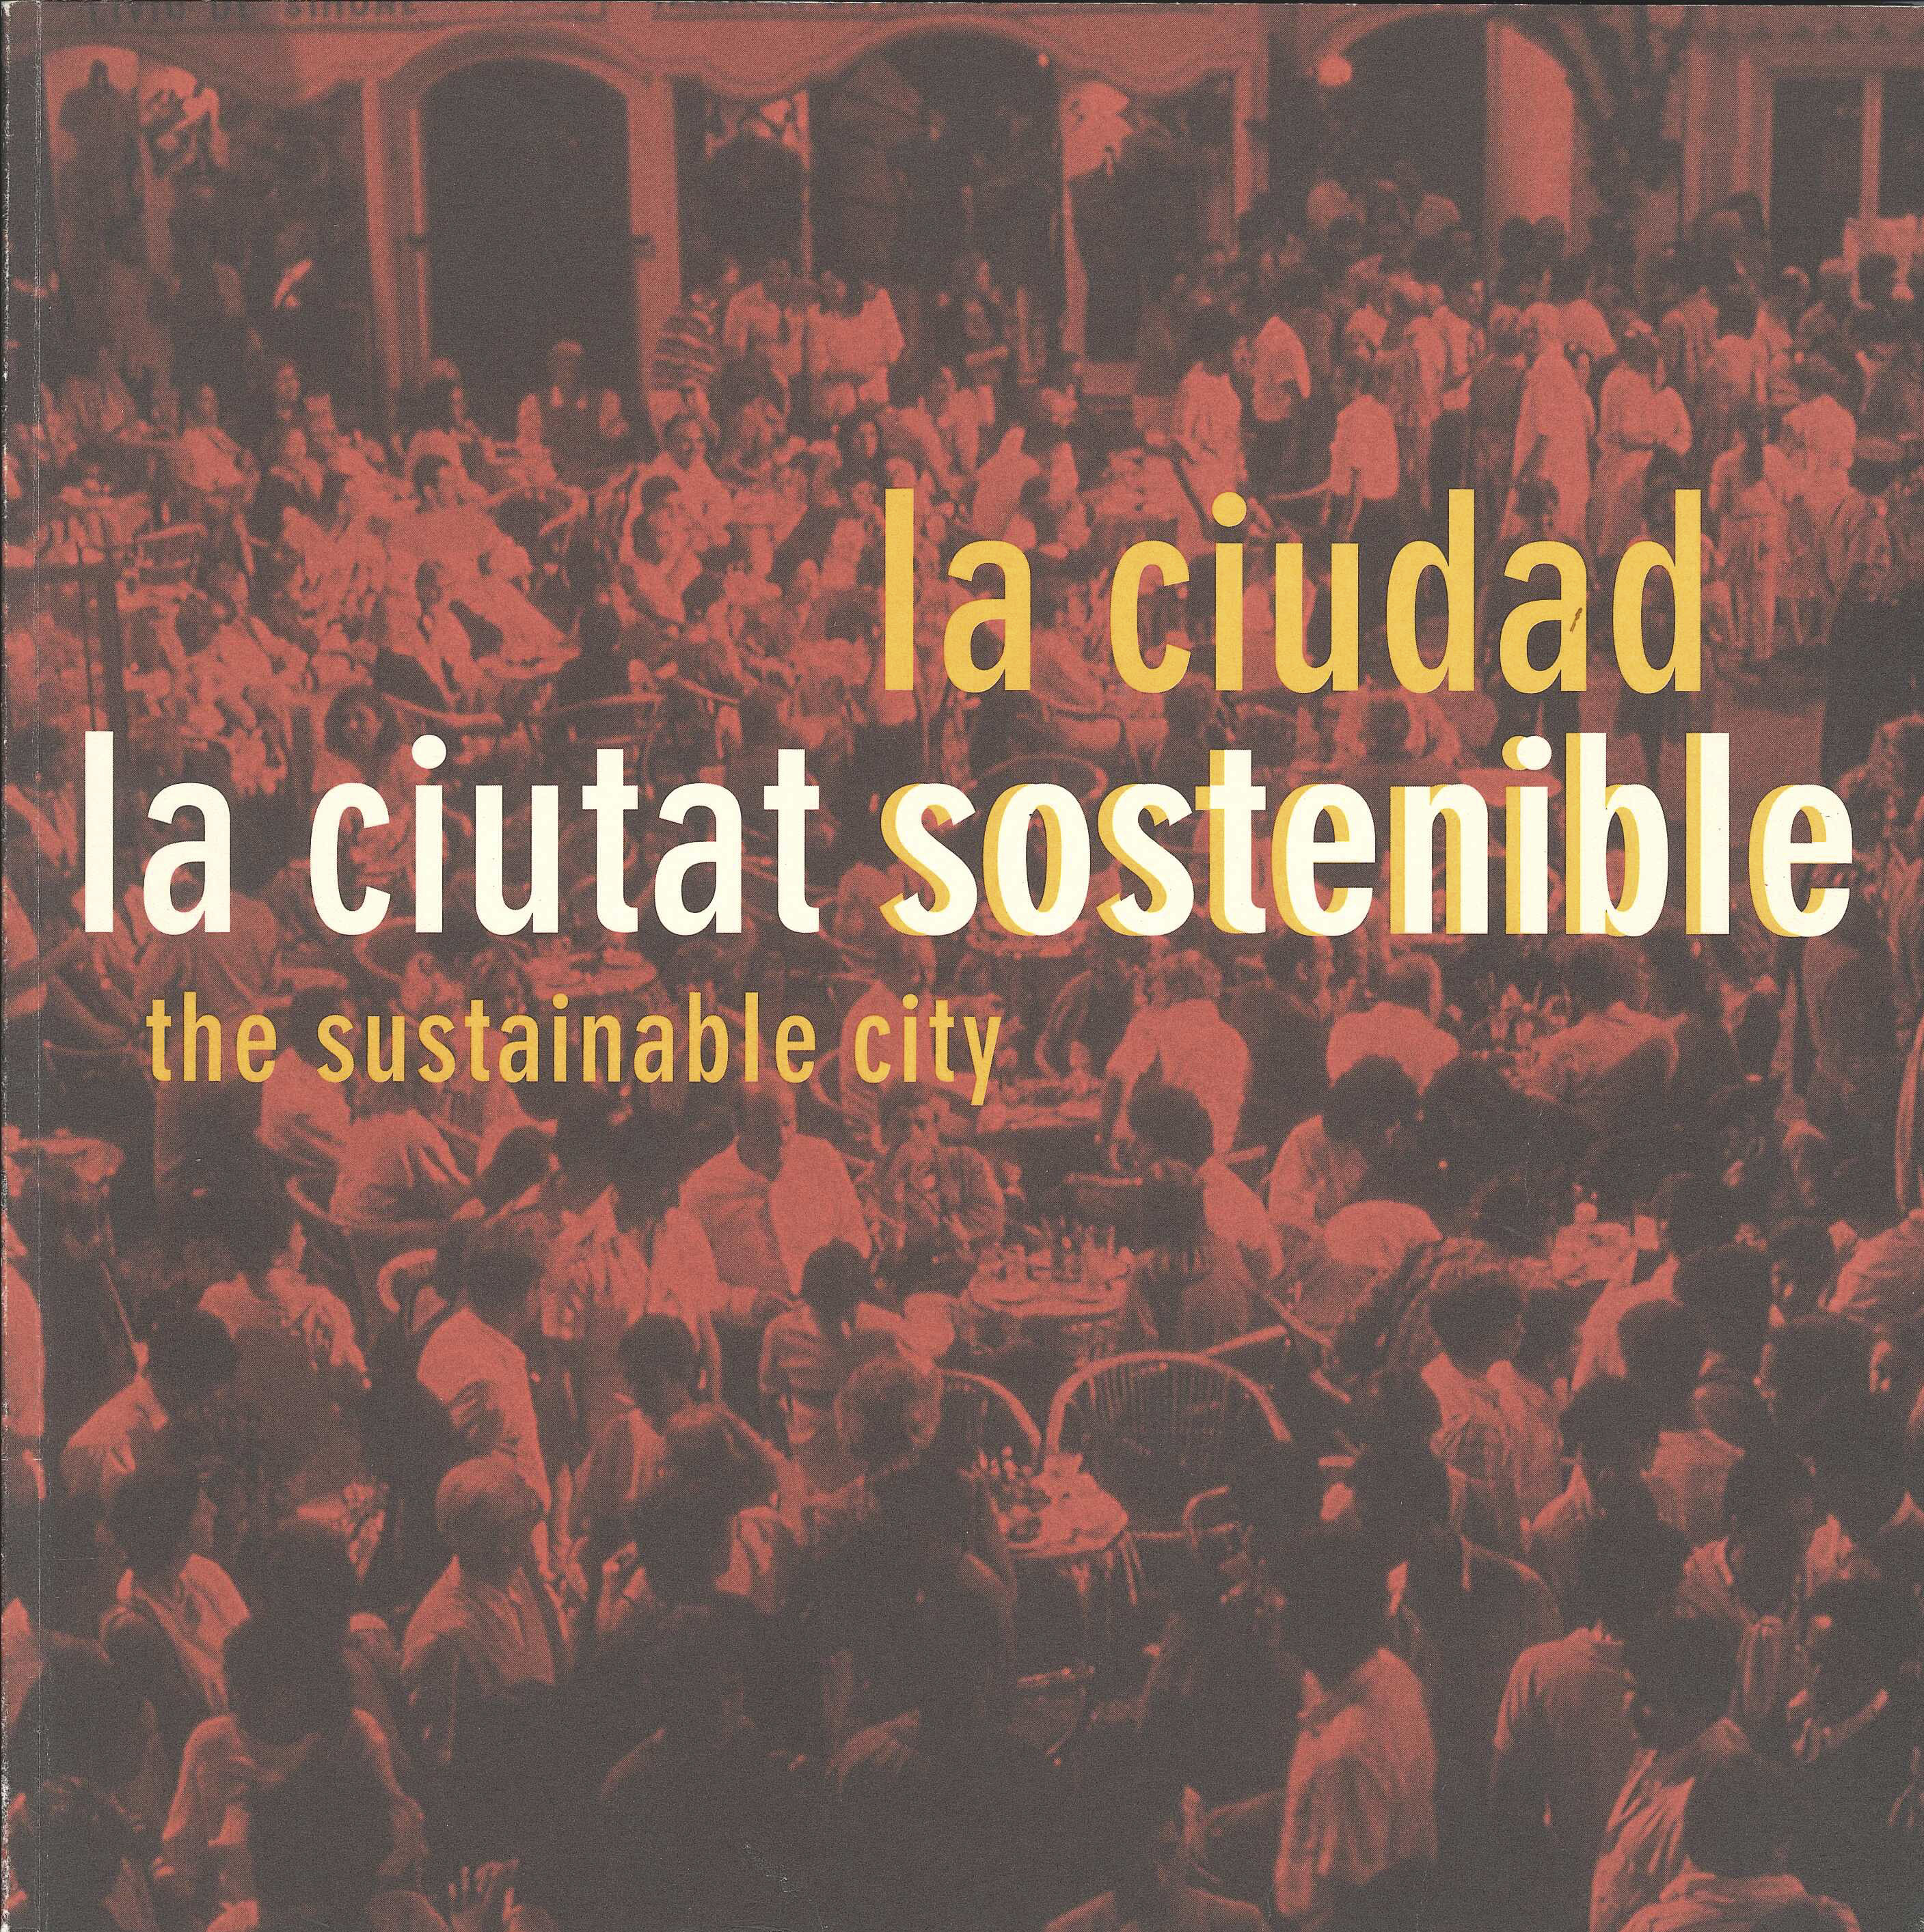 La ciutat sostenible / La ciudad sostenible / The sustainable city